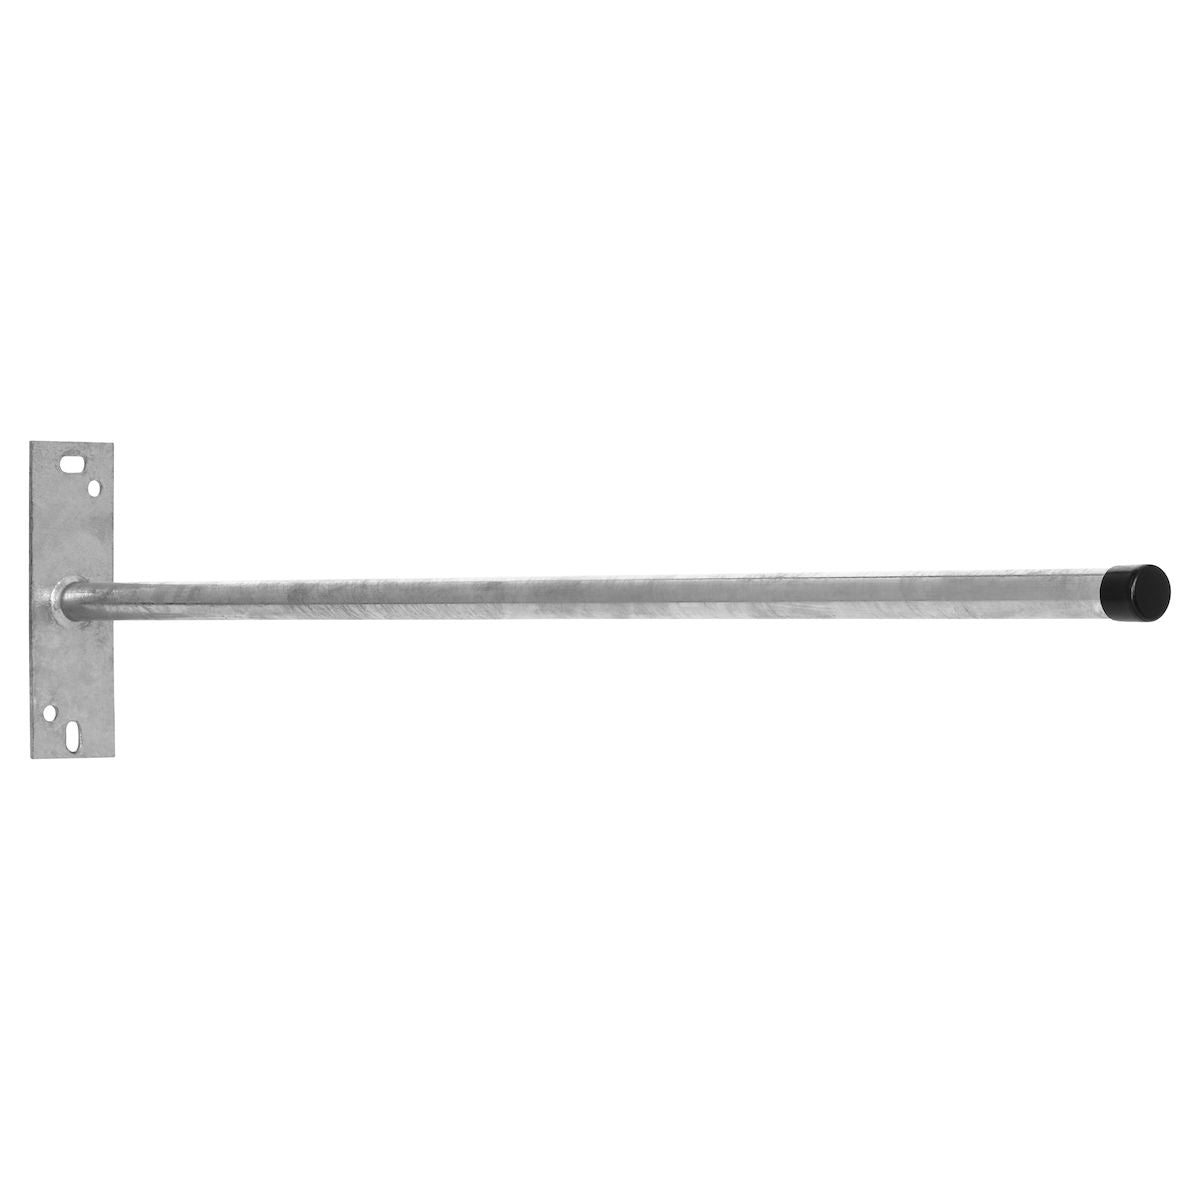 Hills FB603554 1.4m Wall Bracket